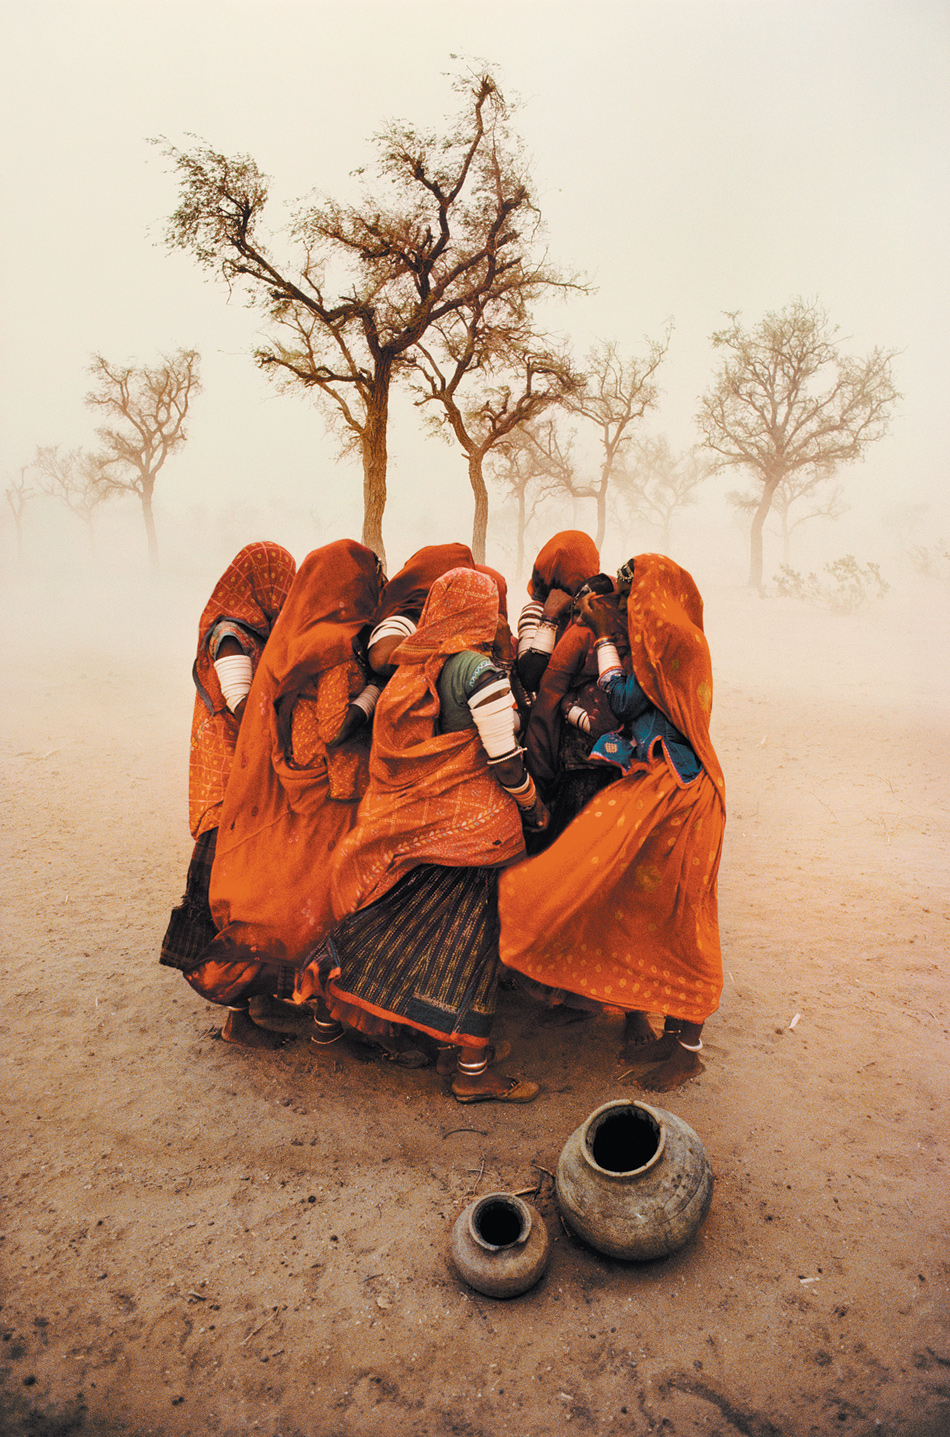 Women shielding themselves from a dust storm, Rajasthan, India, 1983; photograph by Steve McCurry from his book Untold: The Stories Behind the Photographs, which includes fourteen of his photo stories from India, Afghanistan, Cambodia, and other countries, along with essays about his work and ephemera from his personal archive. It has just been published by Phaidon.